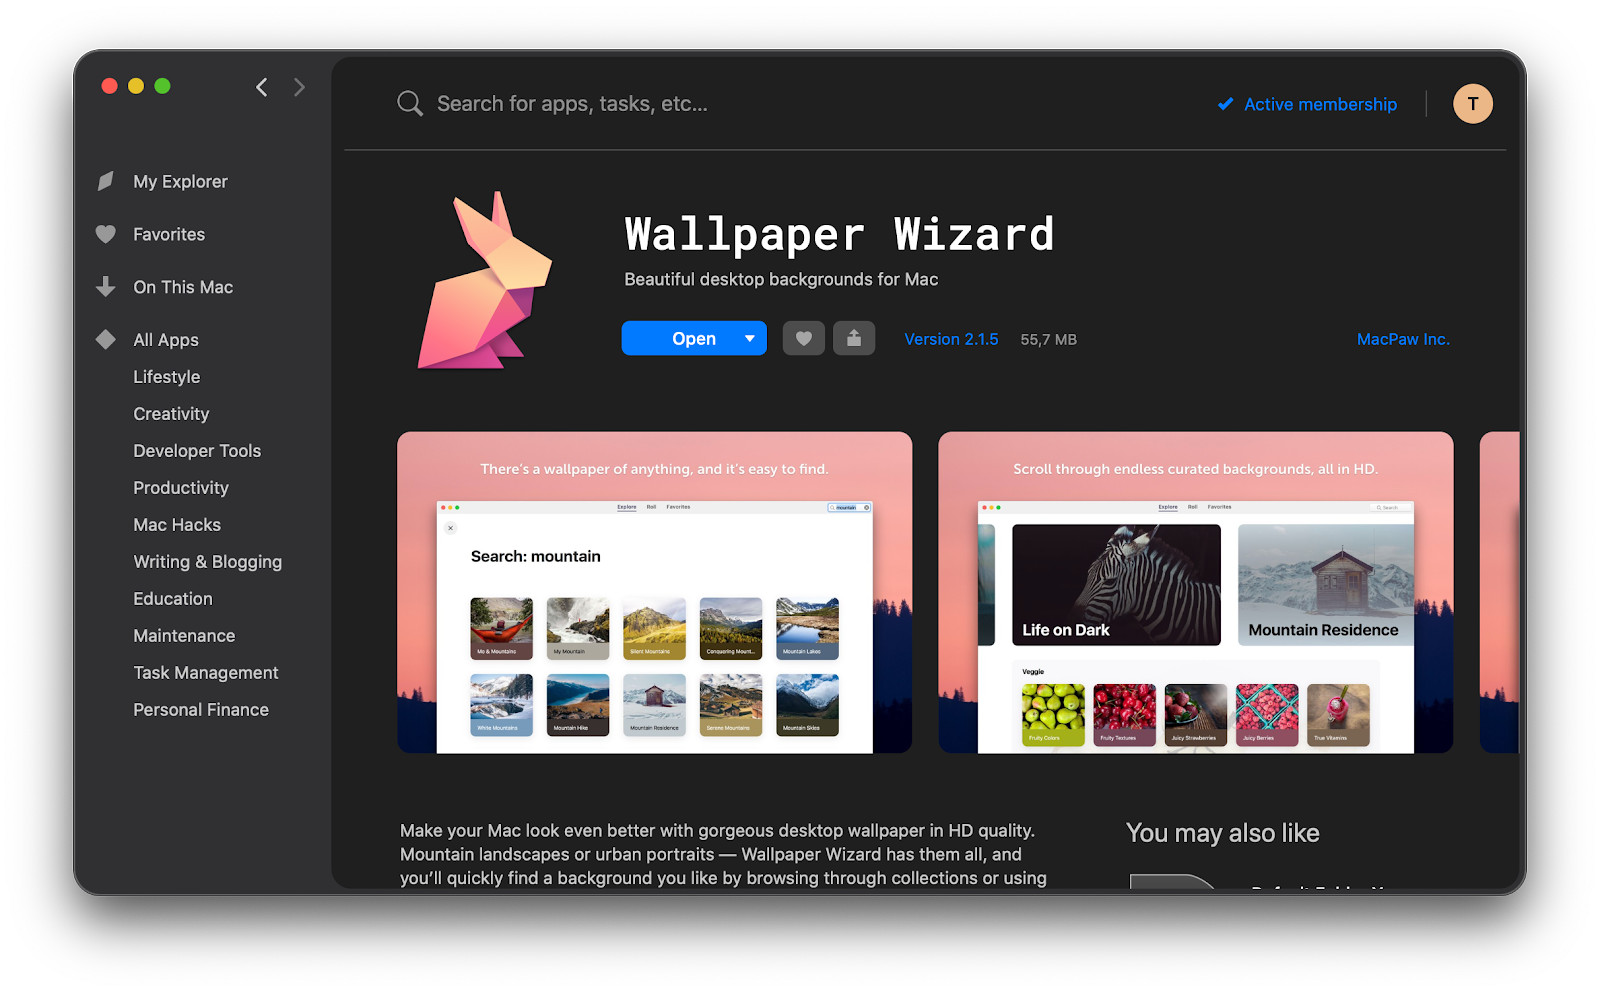 Wallpaper Wizard app